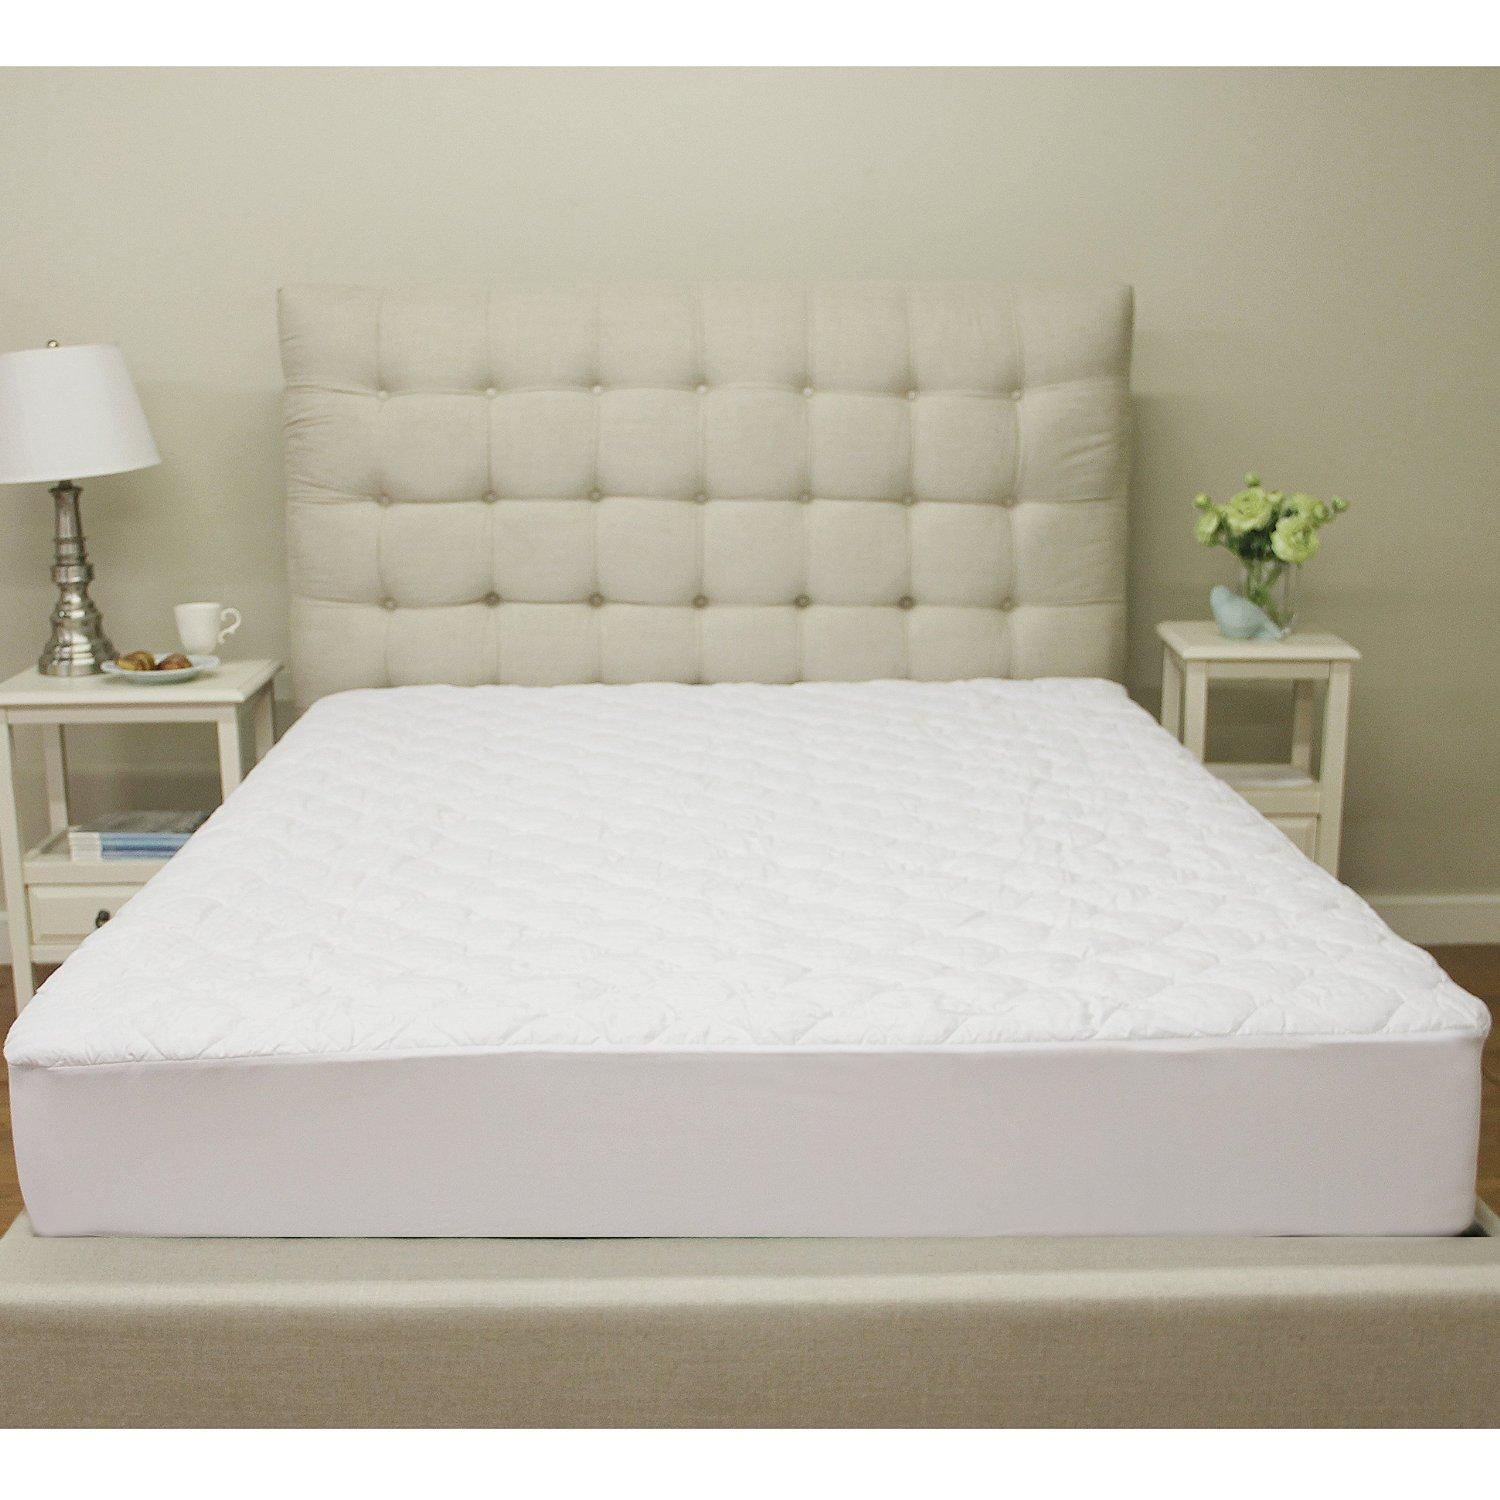 Classic Brands Defend-A-Bed Deluxe Quilted Waterproof Mattress Protector, Queen Size